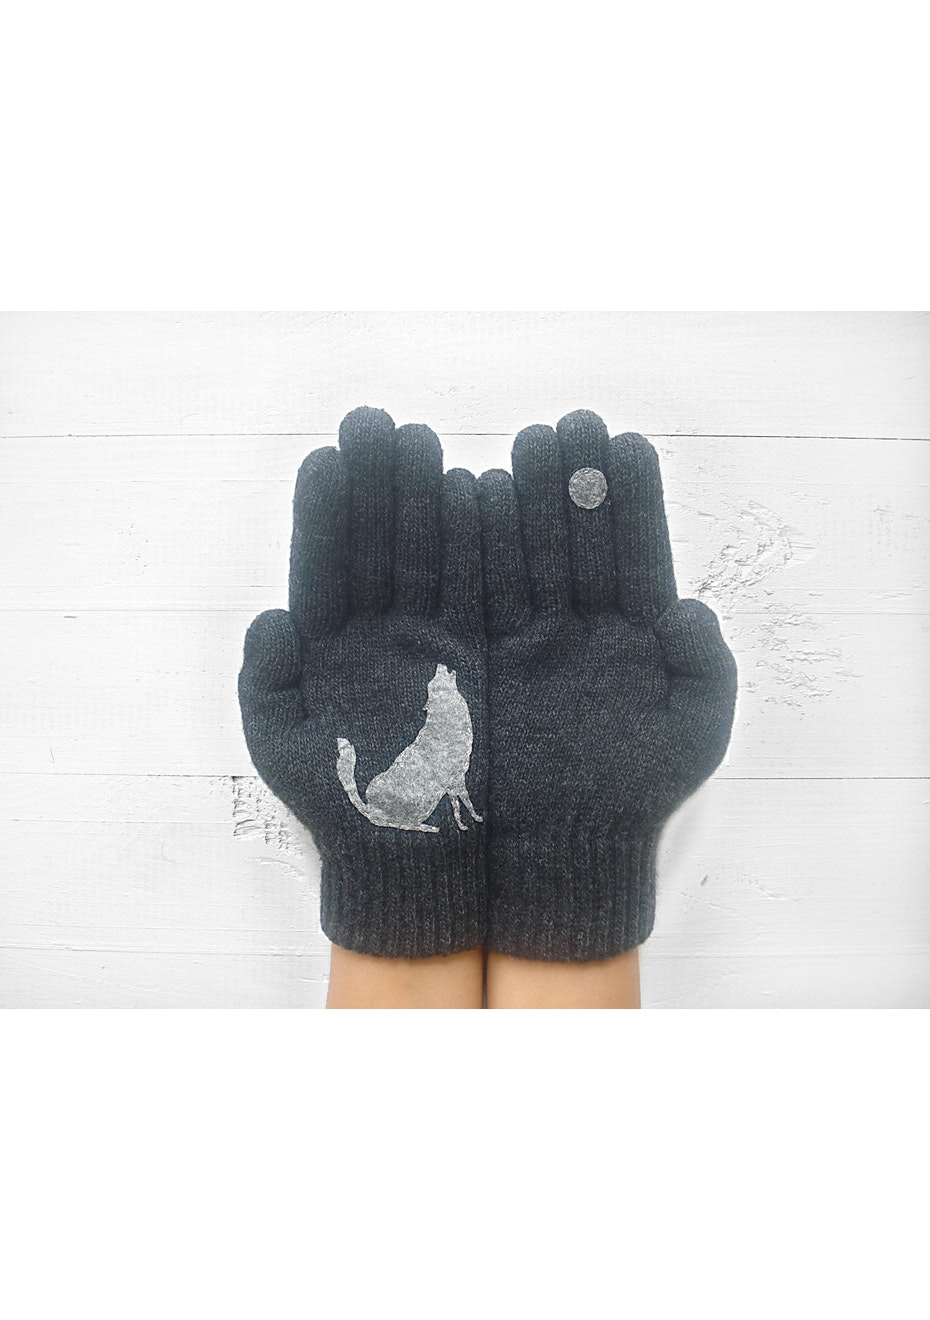 Barking At The Moon Gloves - Charcoal/Grey